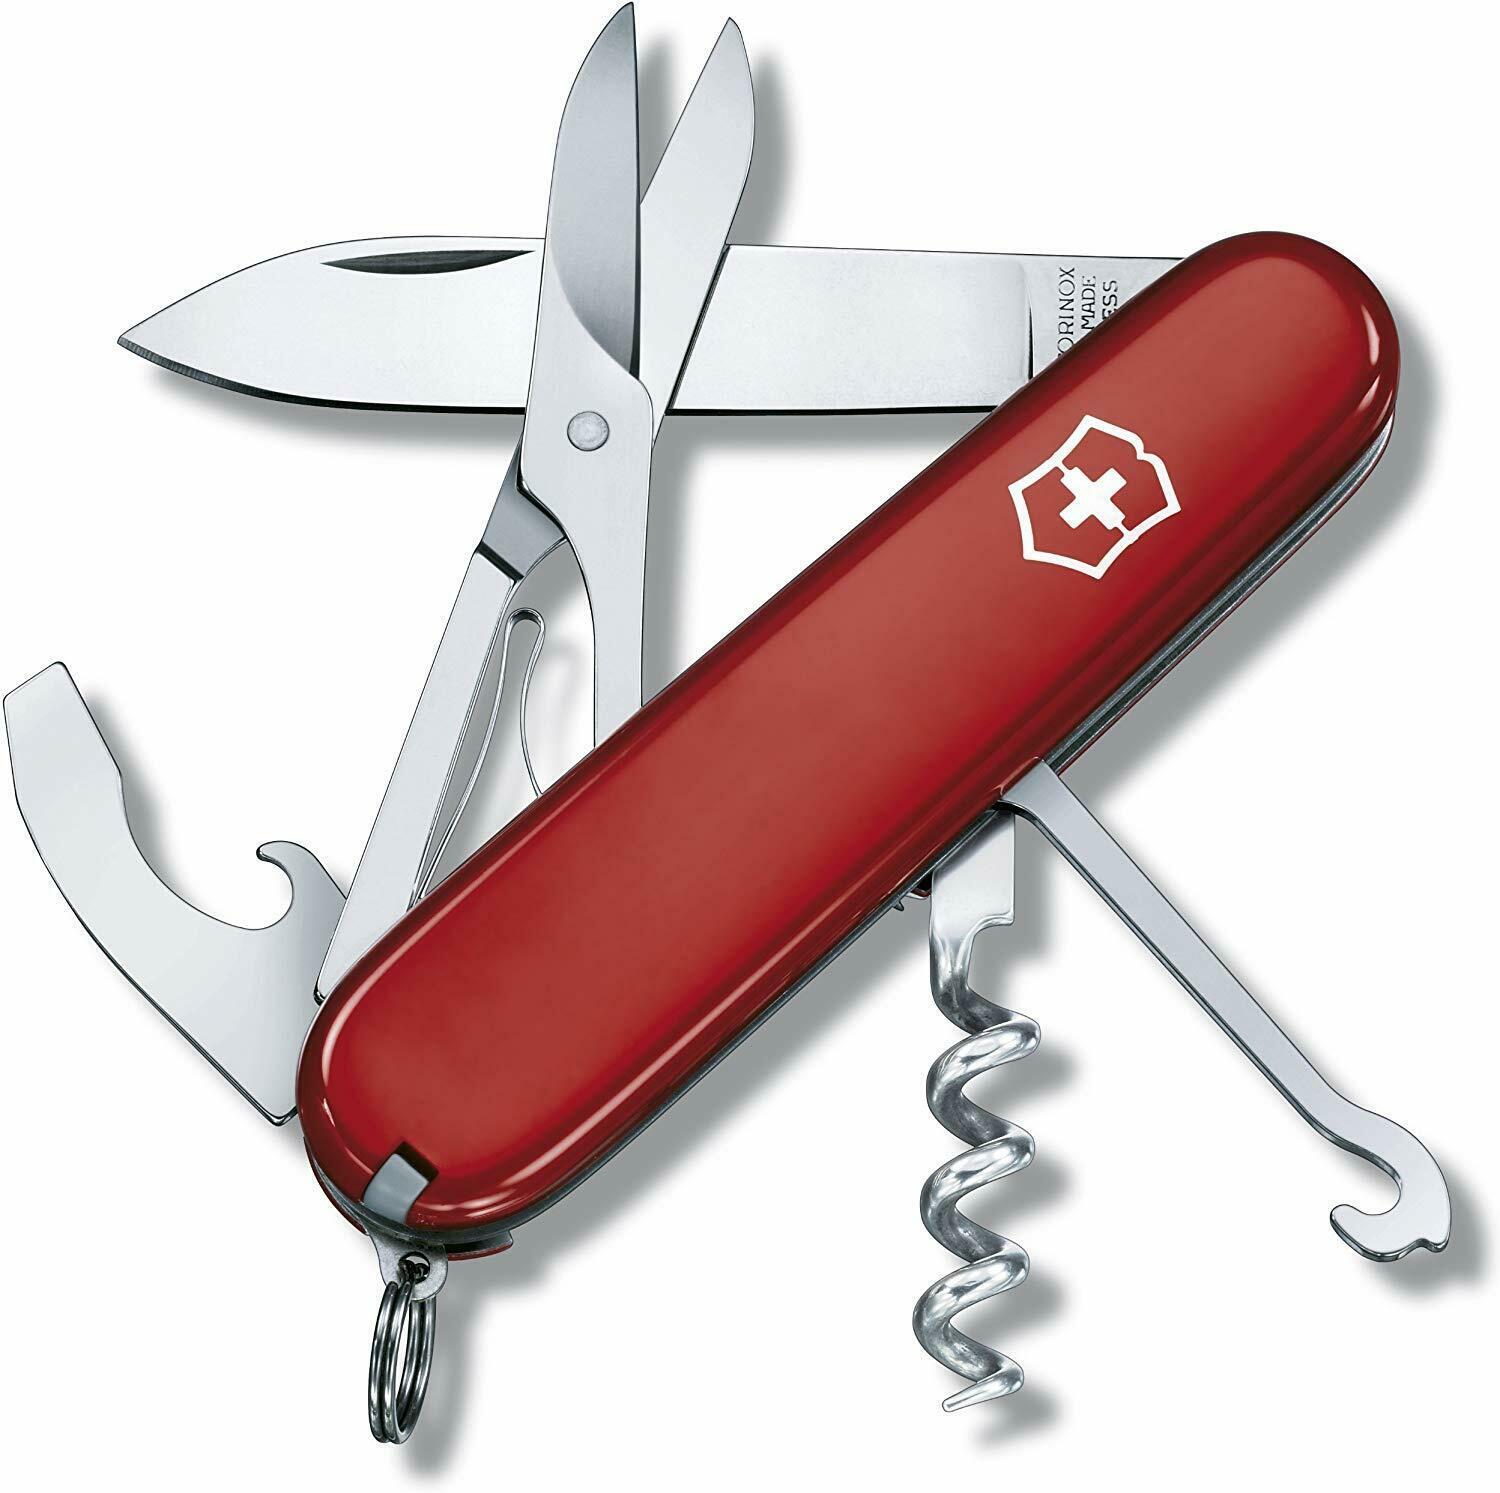 Compact with warranty VICTORINOX From Stylish anglers Japan